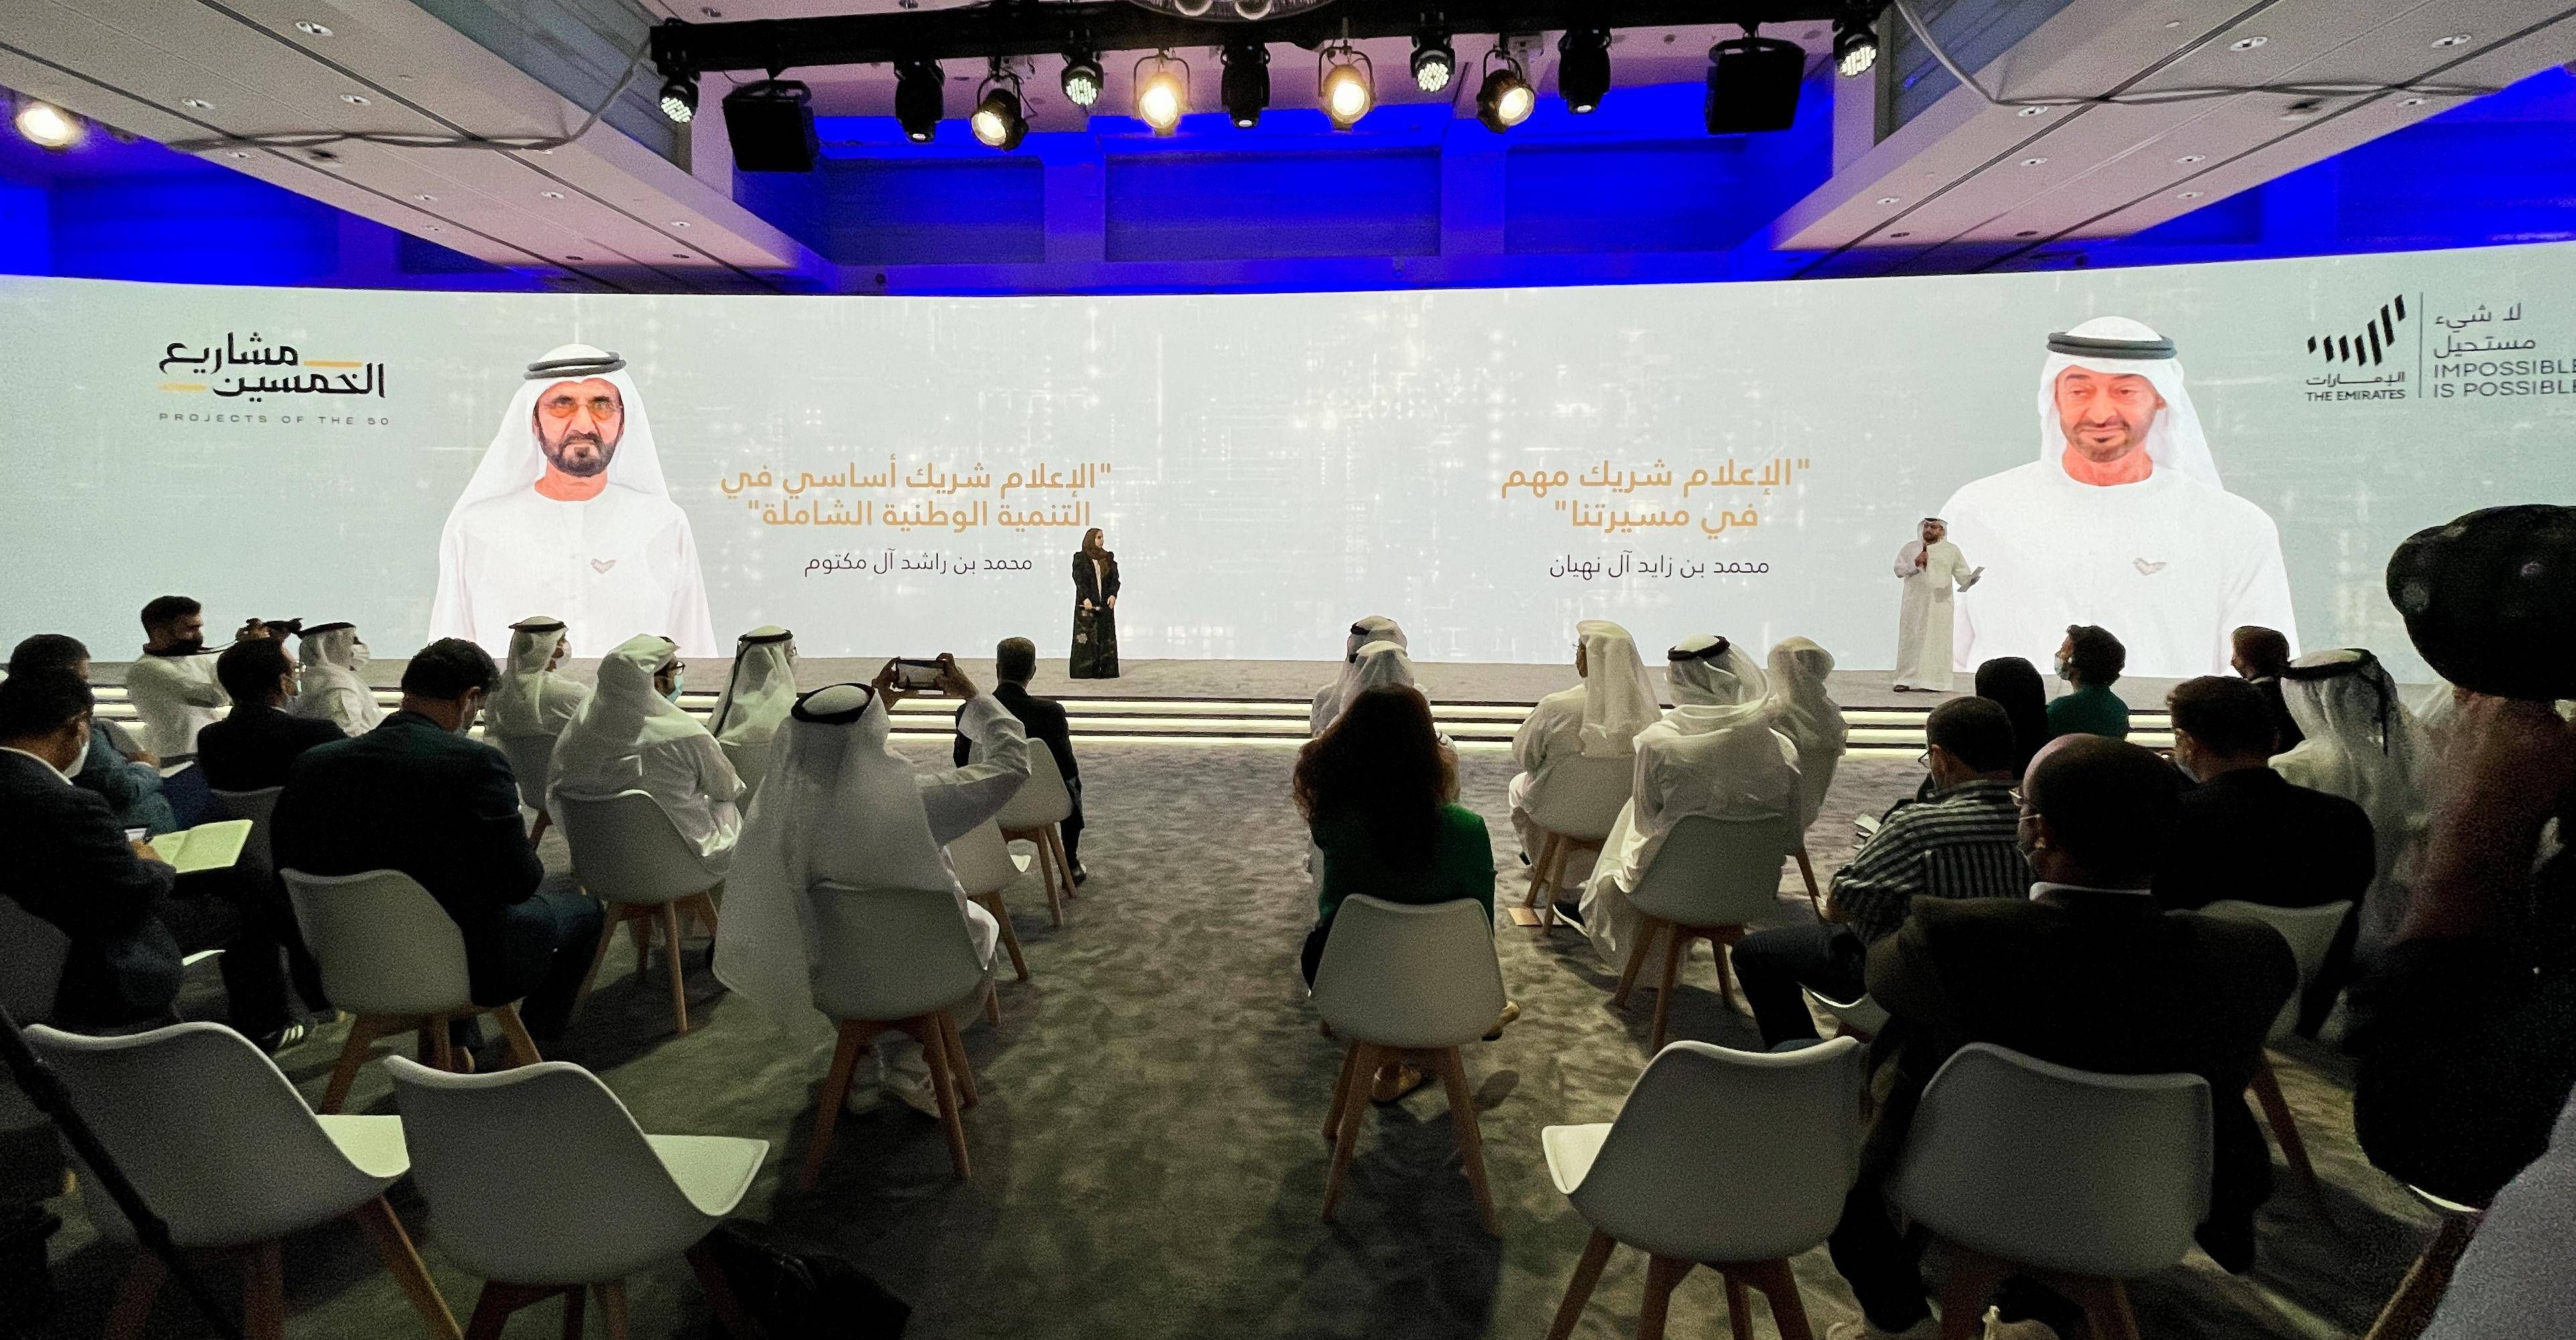 UAE Projects of the 50: First set of plans revealed